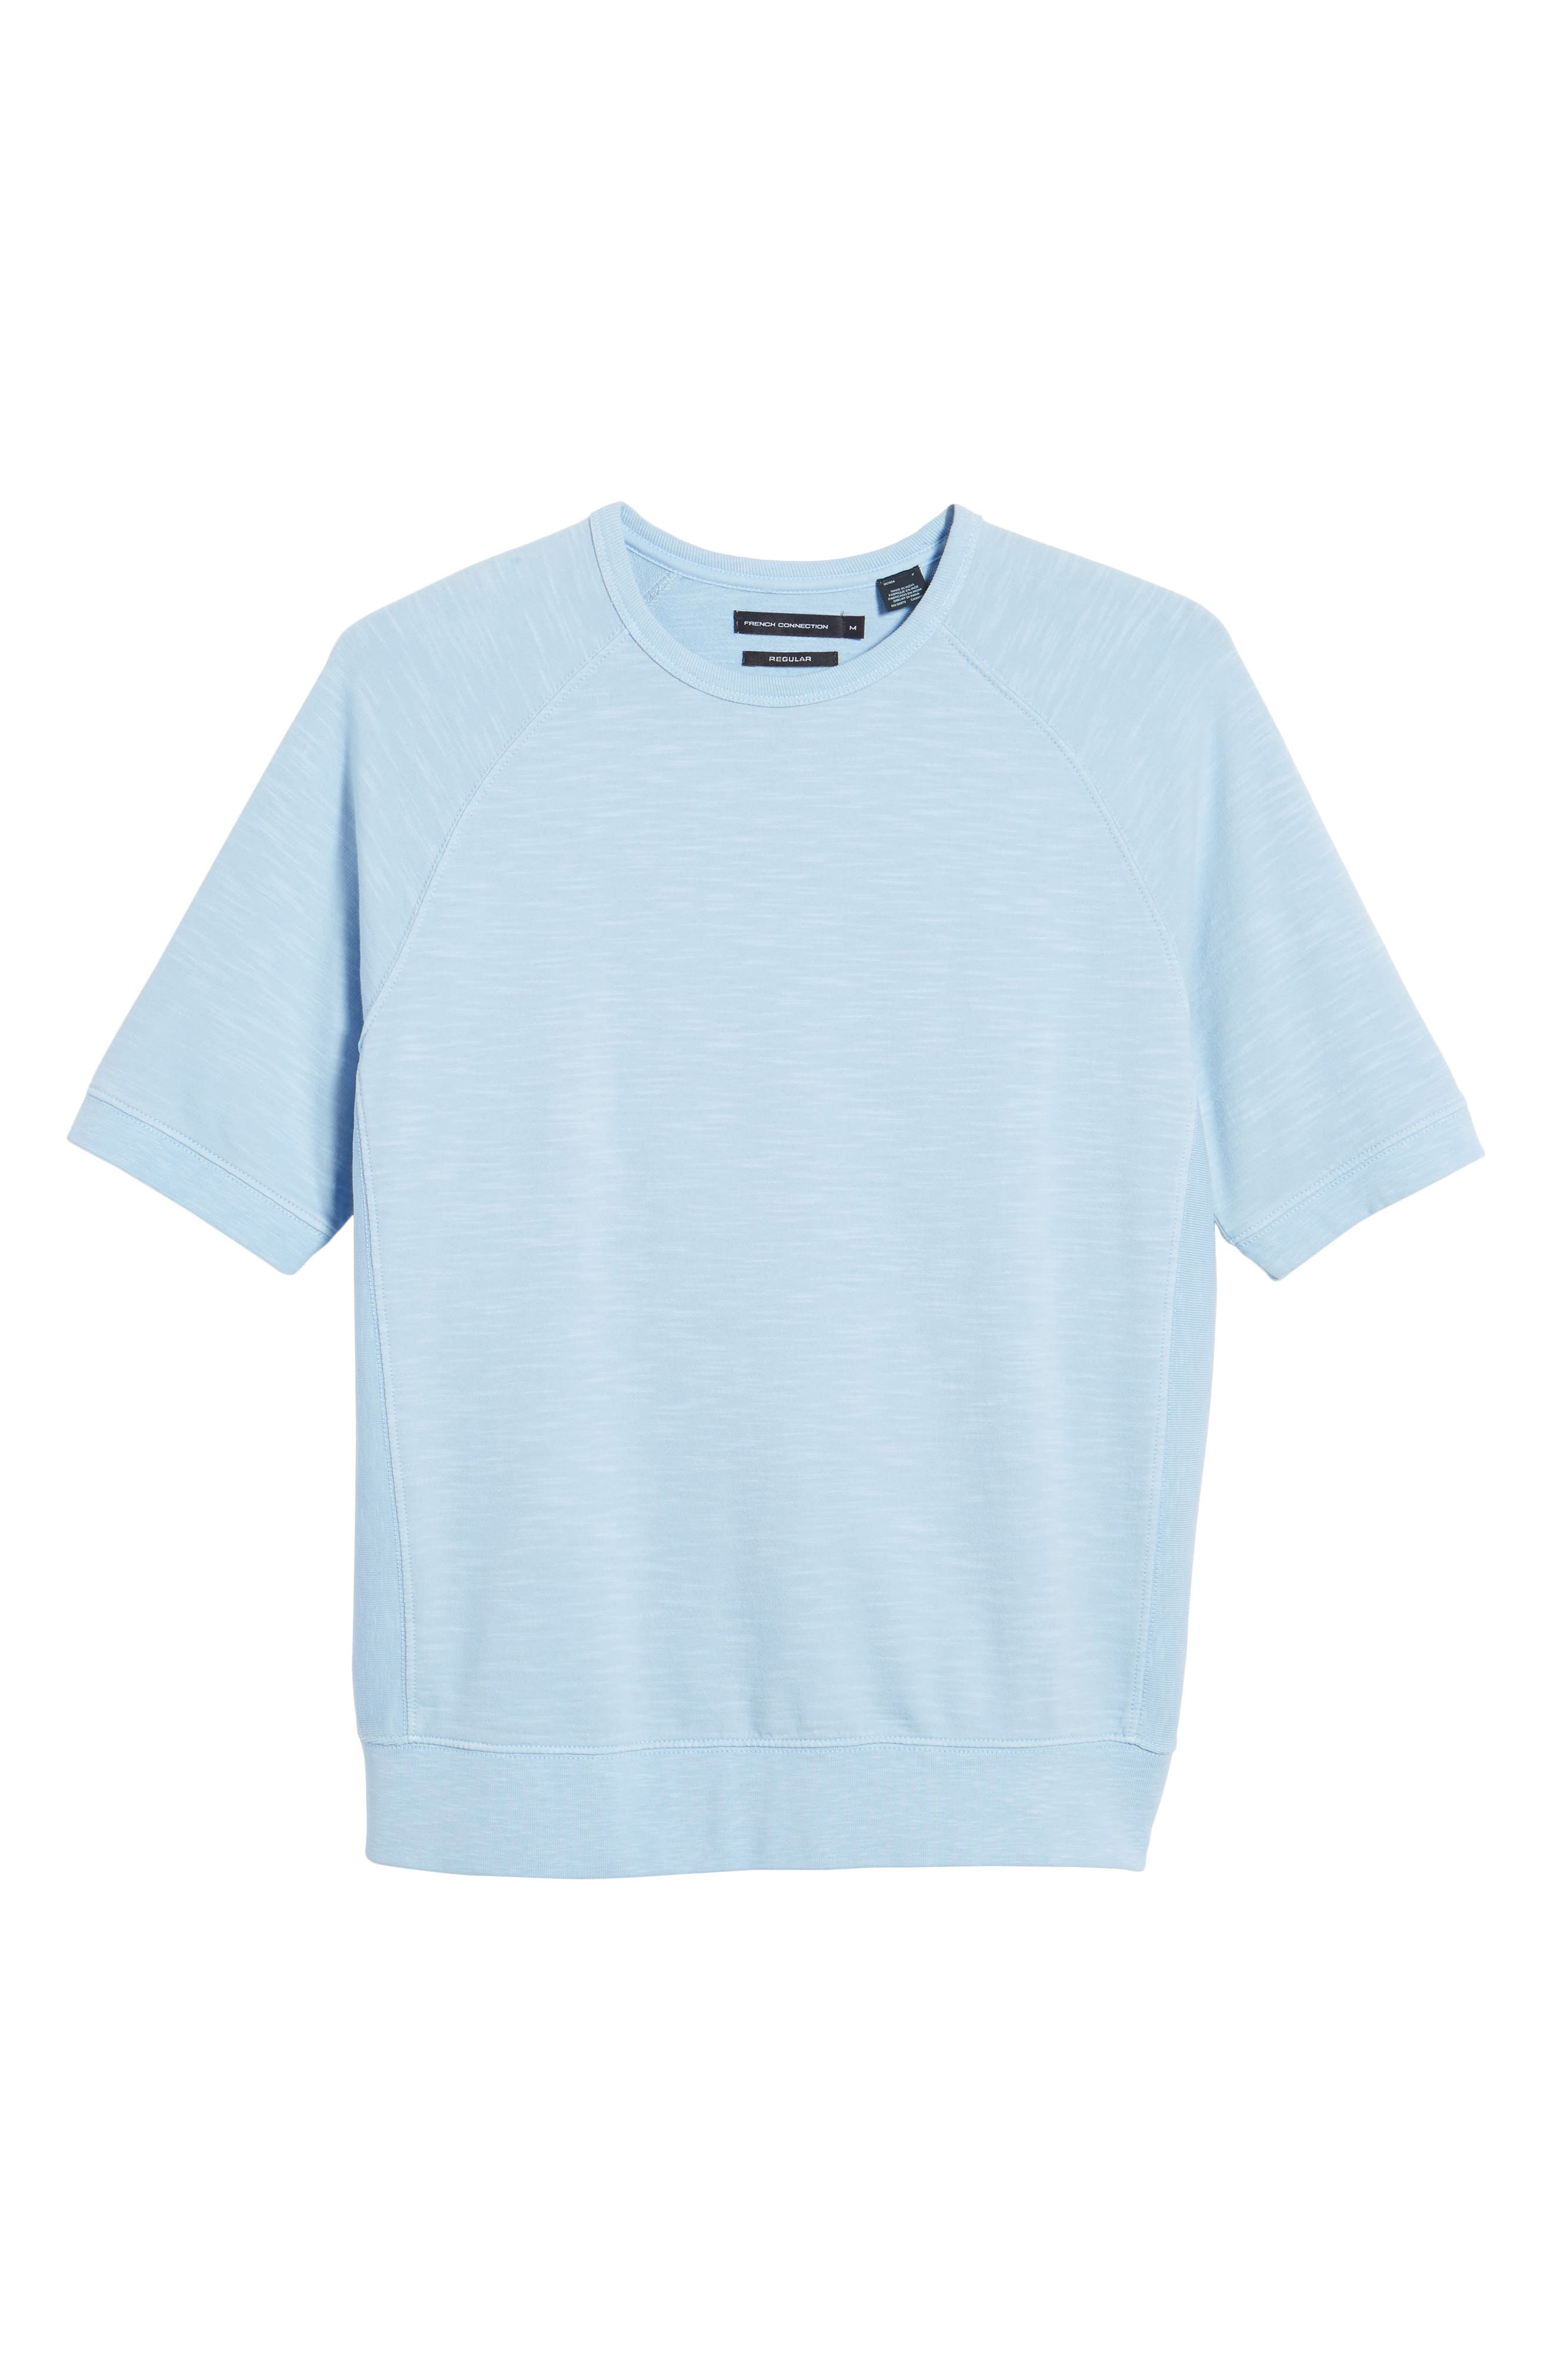 Workout Relaxed Fit Crewneck T-Shirt,                             Alternate thumbnail 6, color,                             400